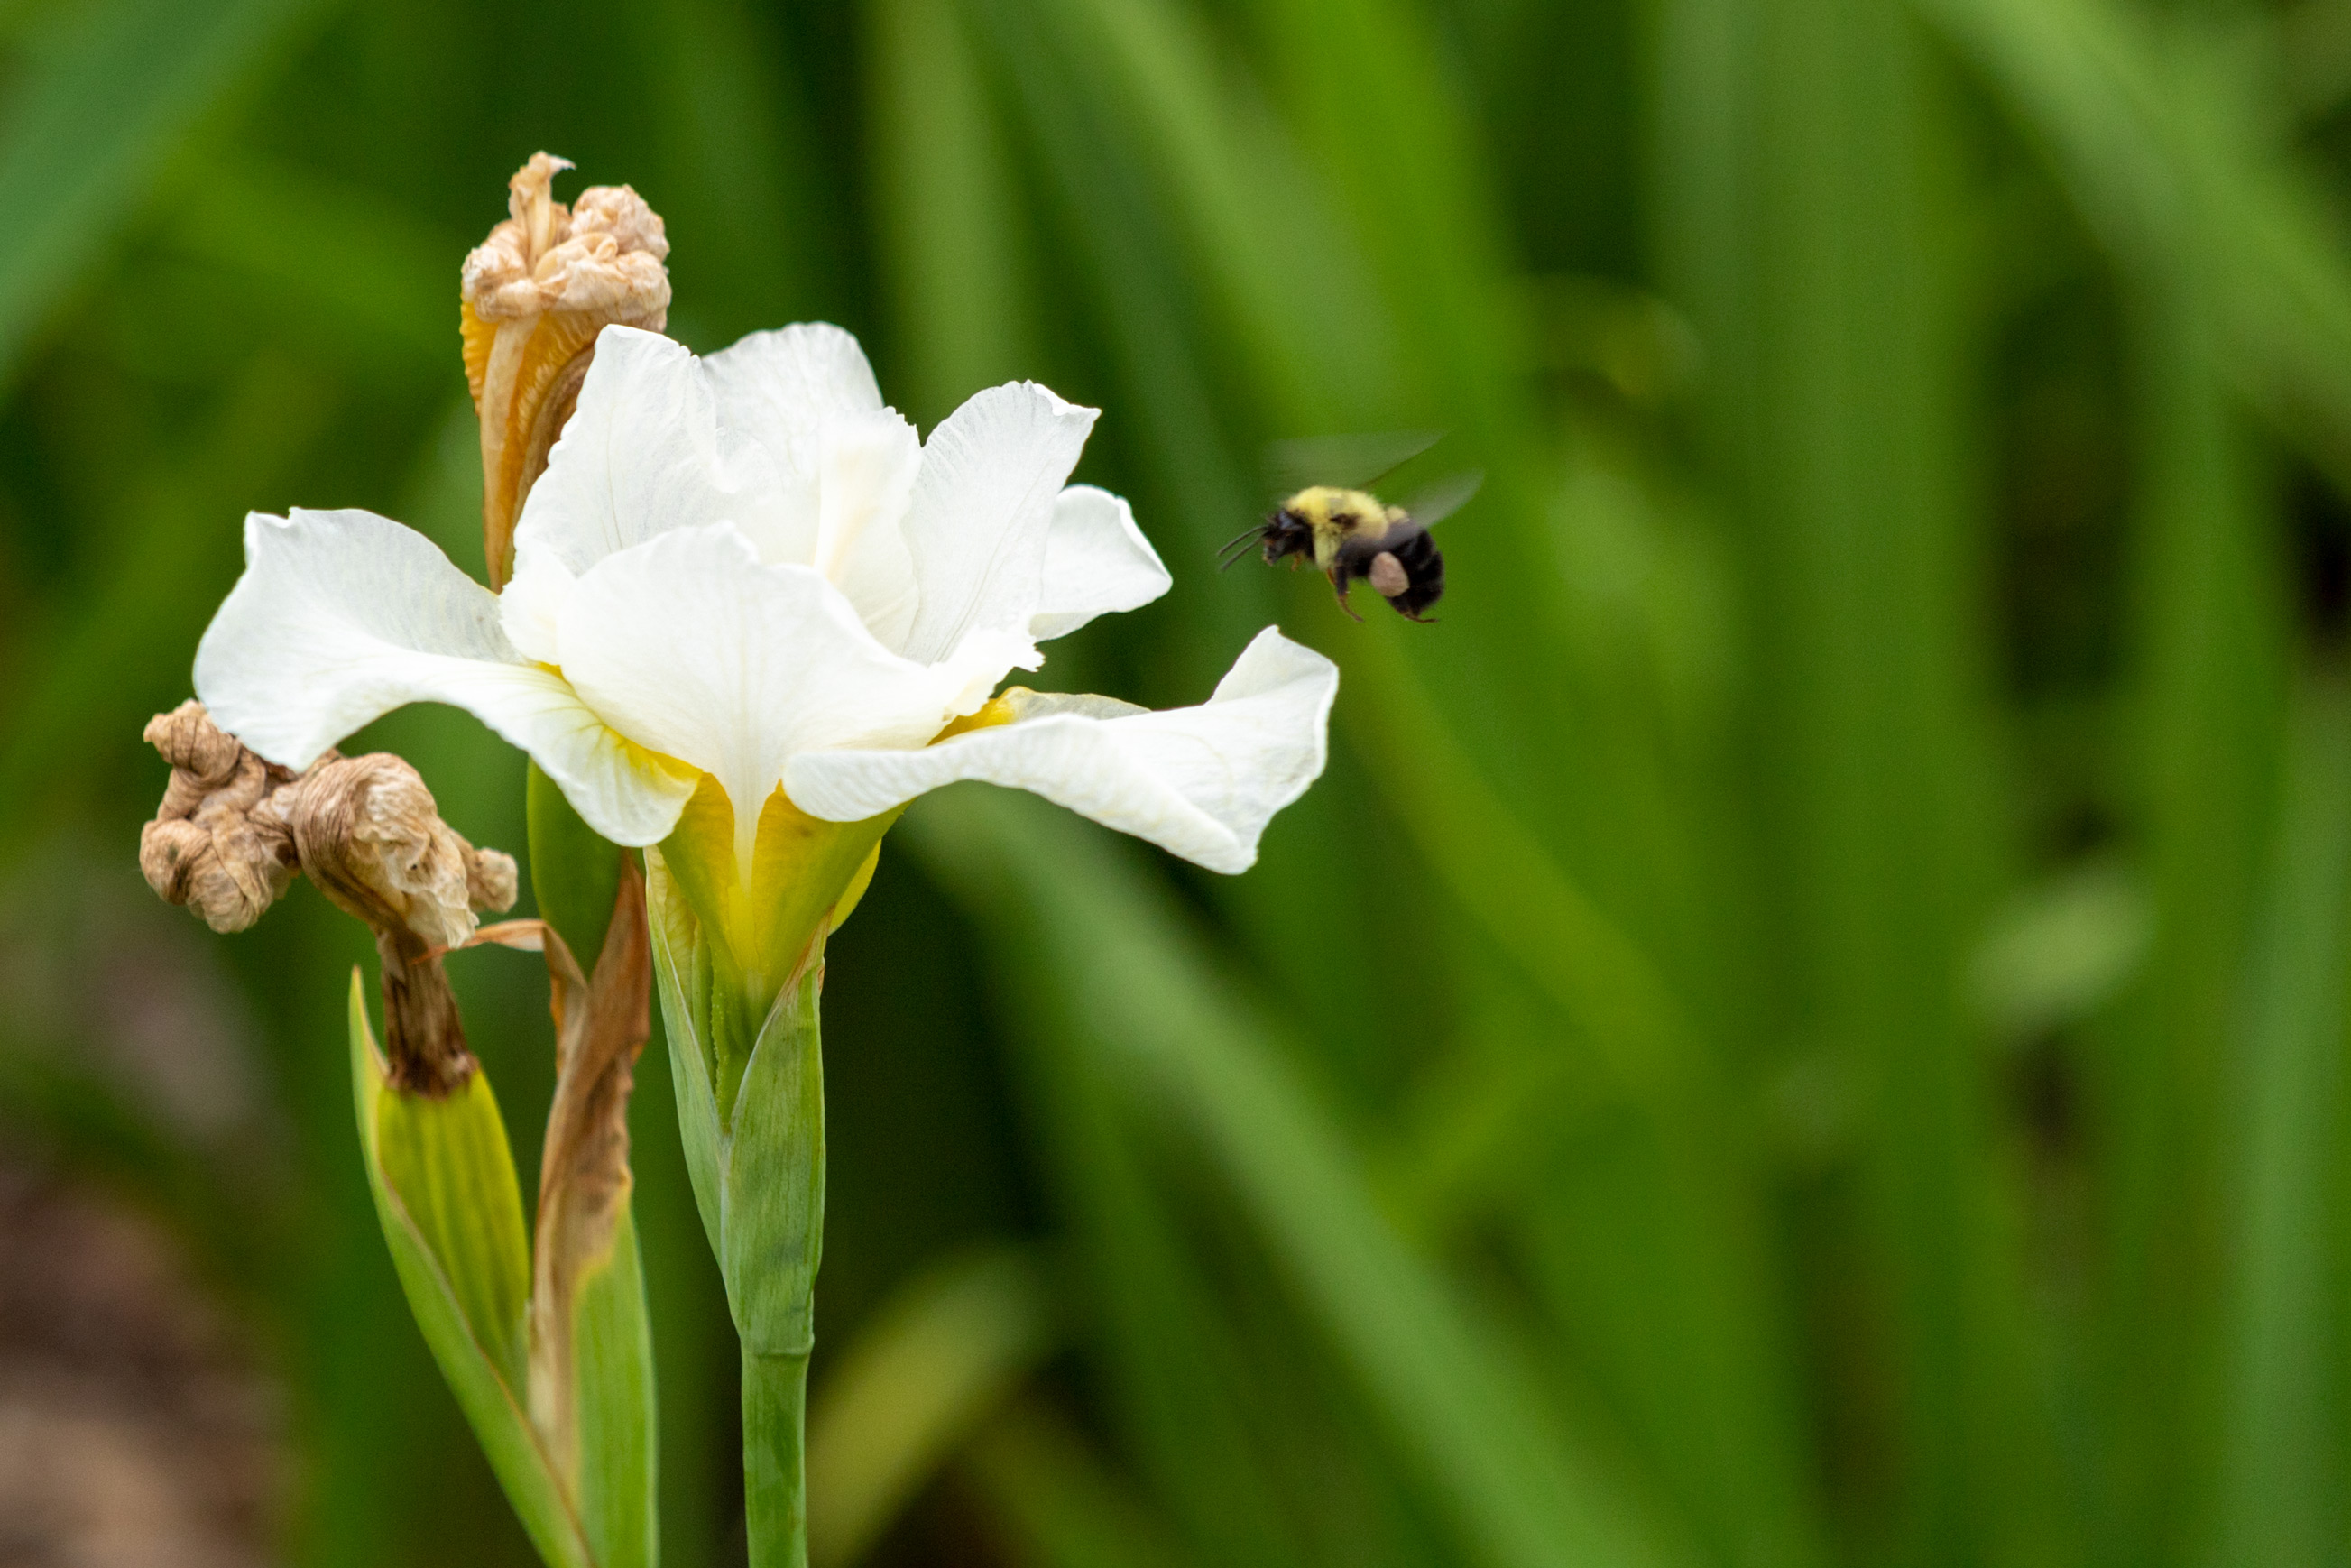 Bumble bee flying towards a white iris